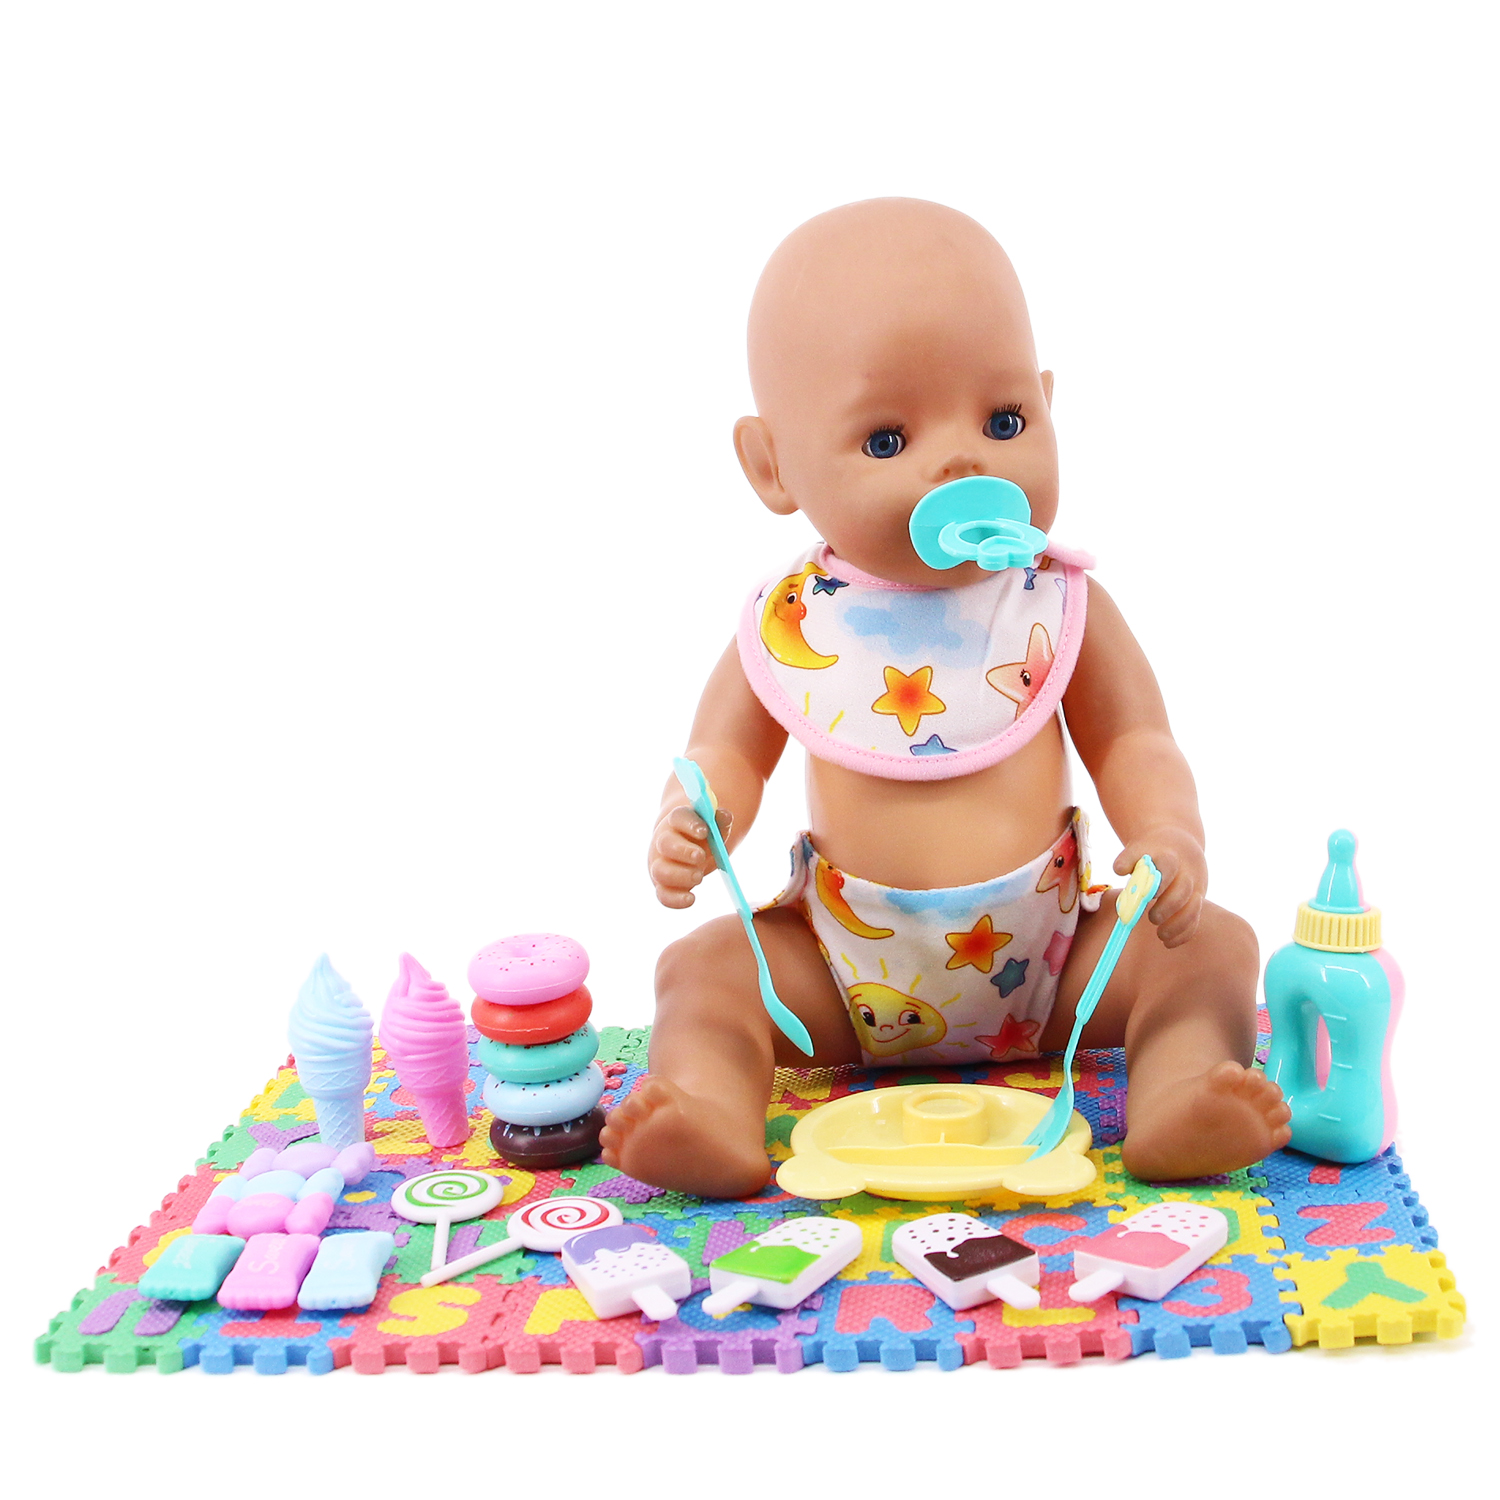 Doll Clothes Mini Play Toy Blanket Food Candy Bowel Nipple For 18 Inch American Of Girl&43Cm Baby New Born Doll Our Generation-1